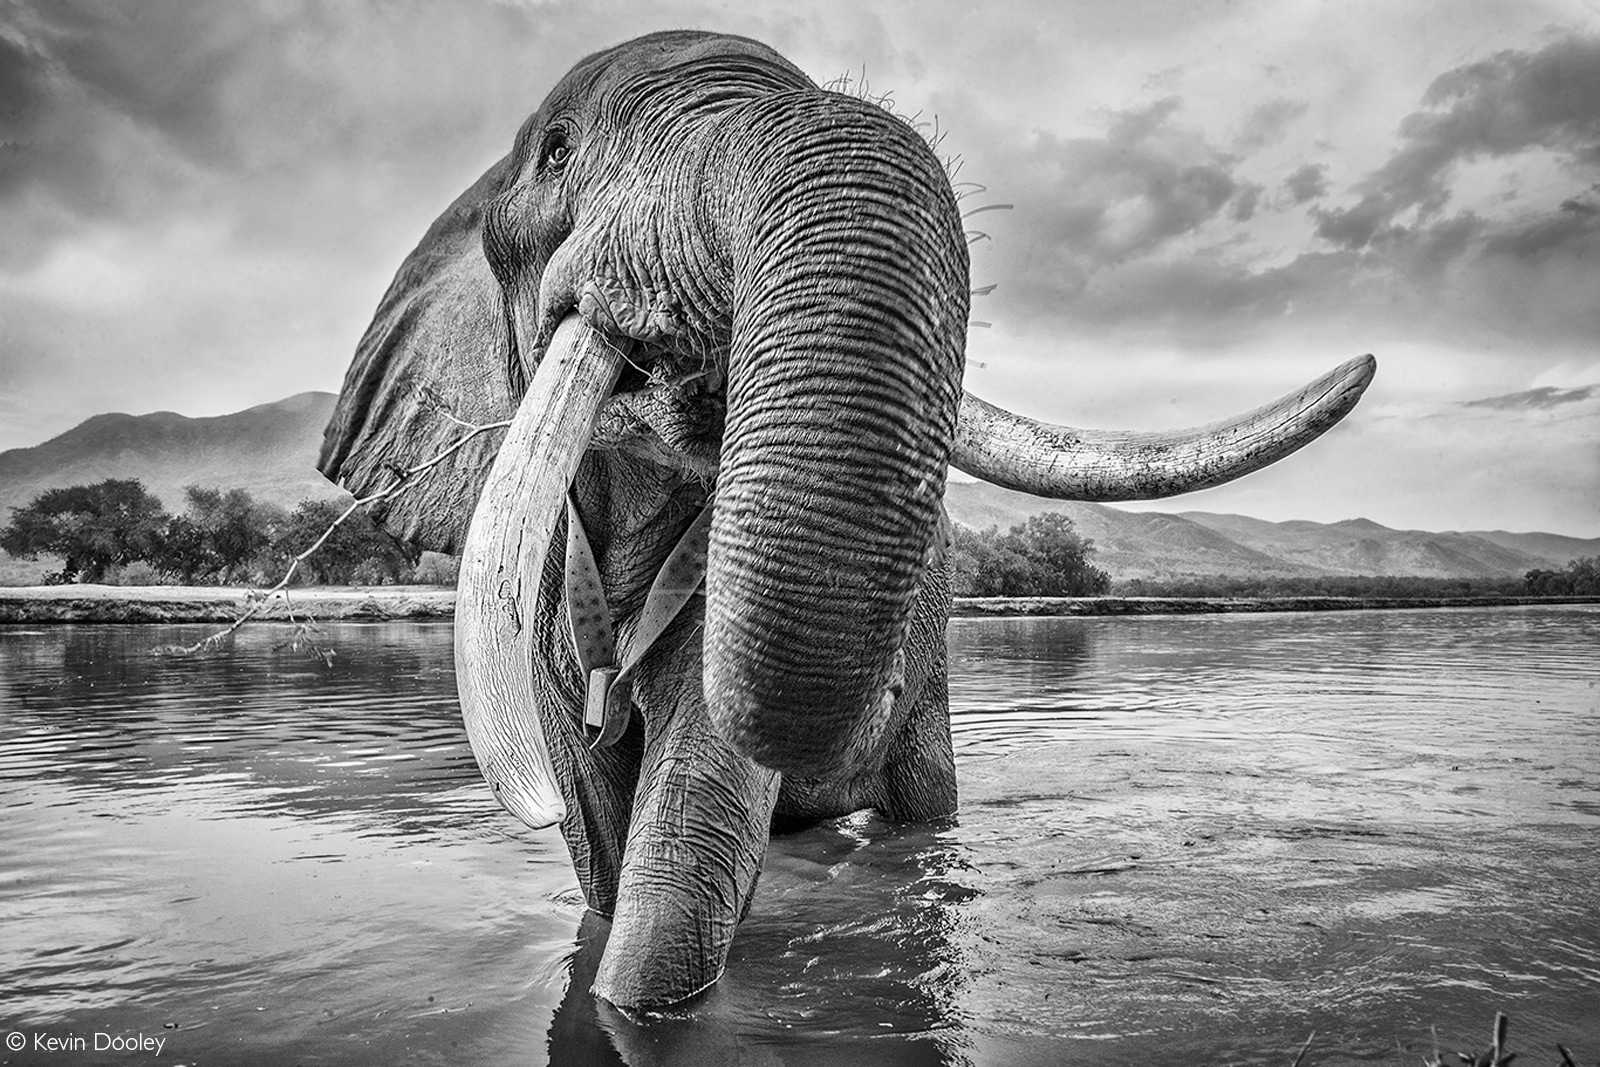 This huge bull elephant was busy drinking water in the Zambezi River. I crawled down to the riverbank and with a low angle I got this image. Mana Pools National Park, Zimbabwe © Kevin Dooley